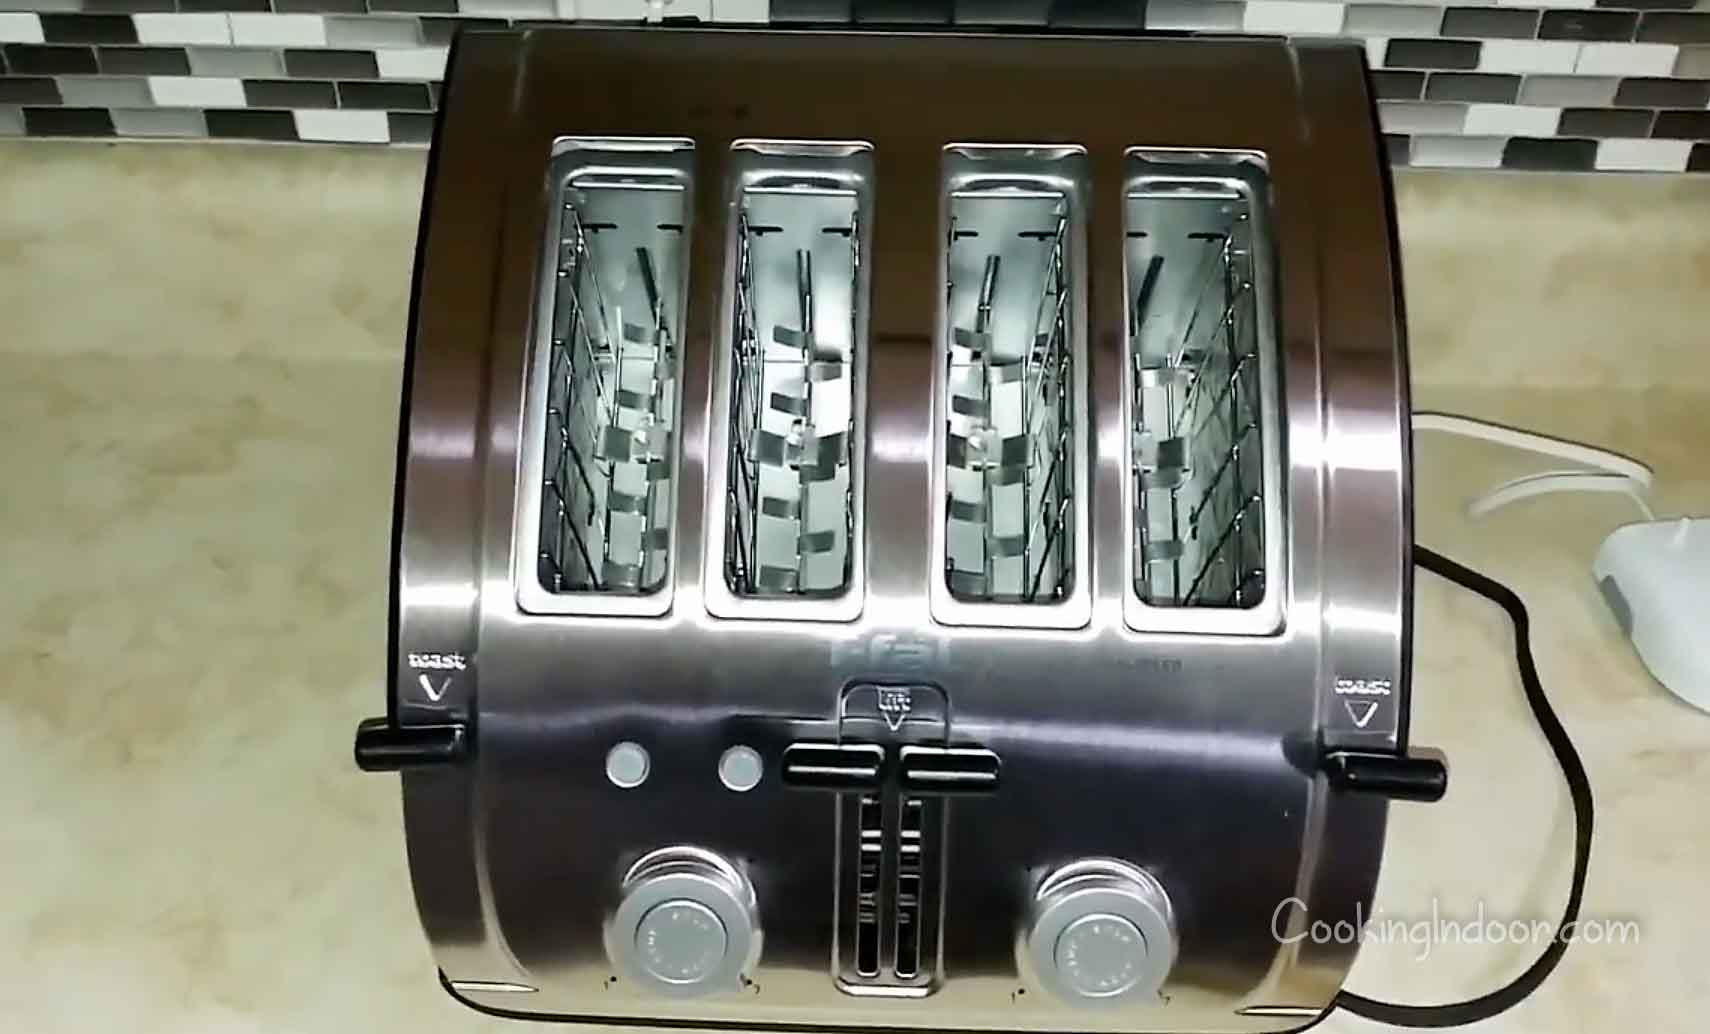 Best T-fal toaster